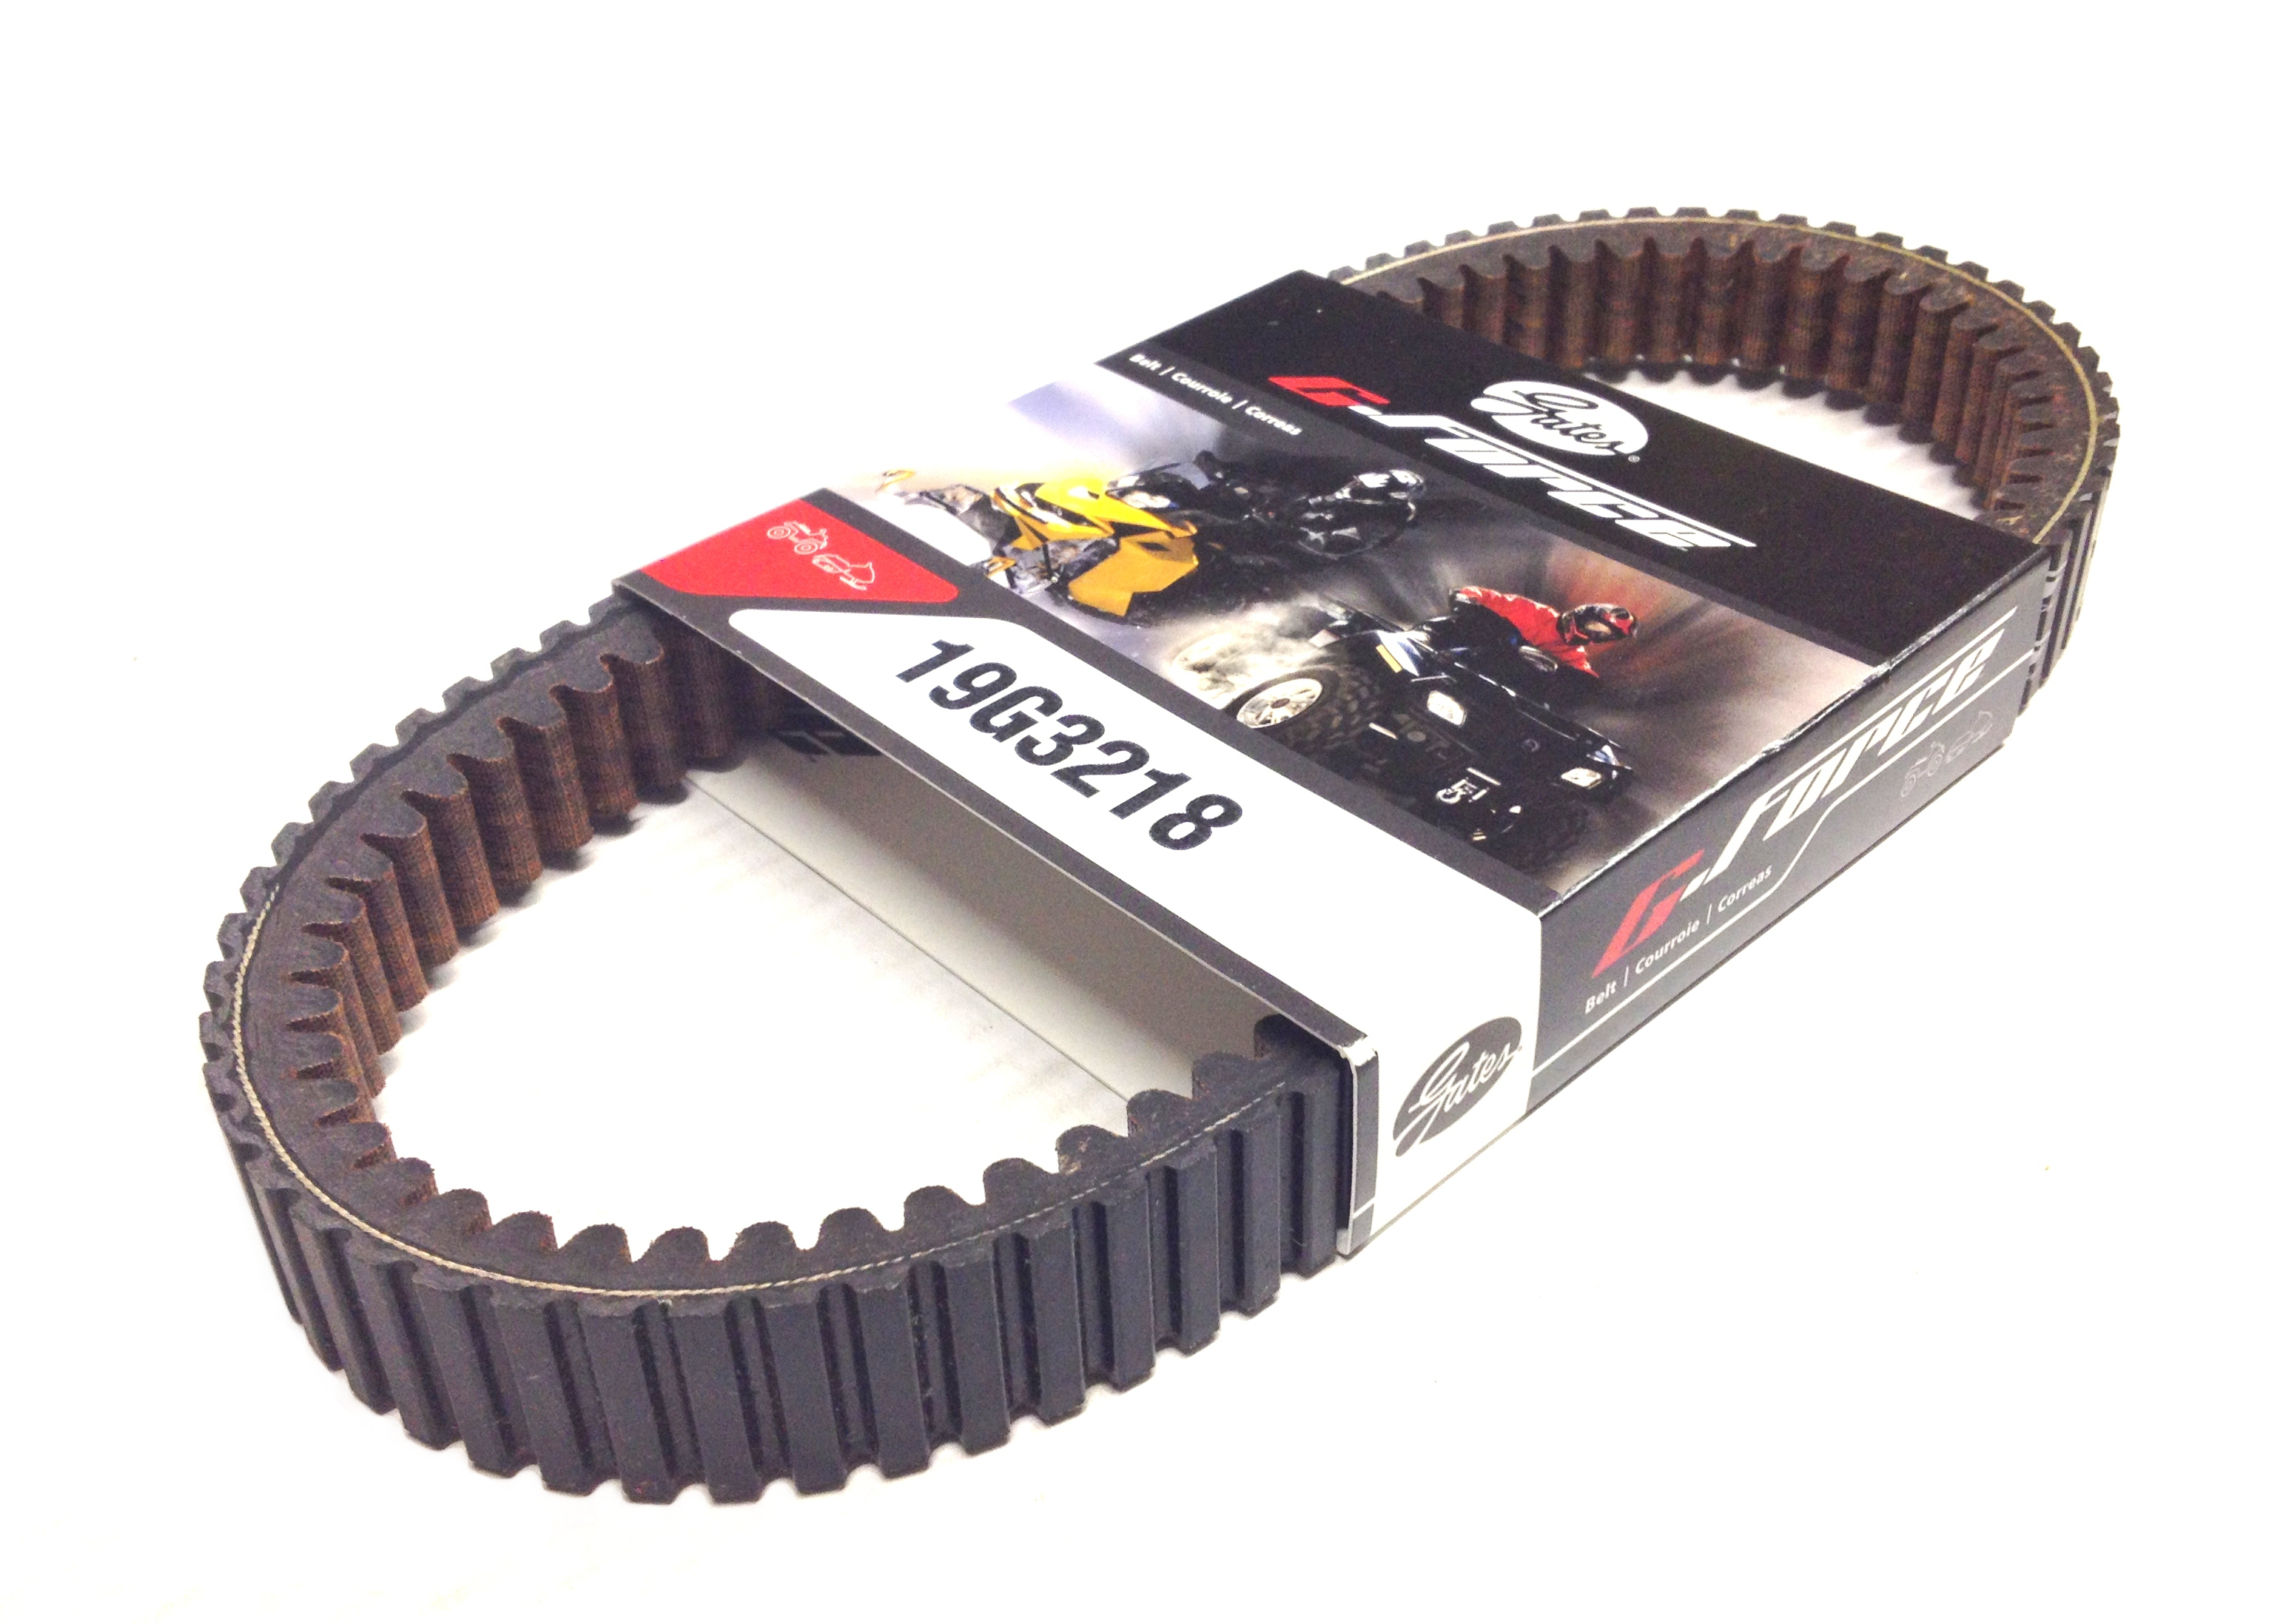 Dayco XTX Drive Belt for Kawasaki Brute Force Teryx 750 Replaces 59011-0019